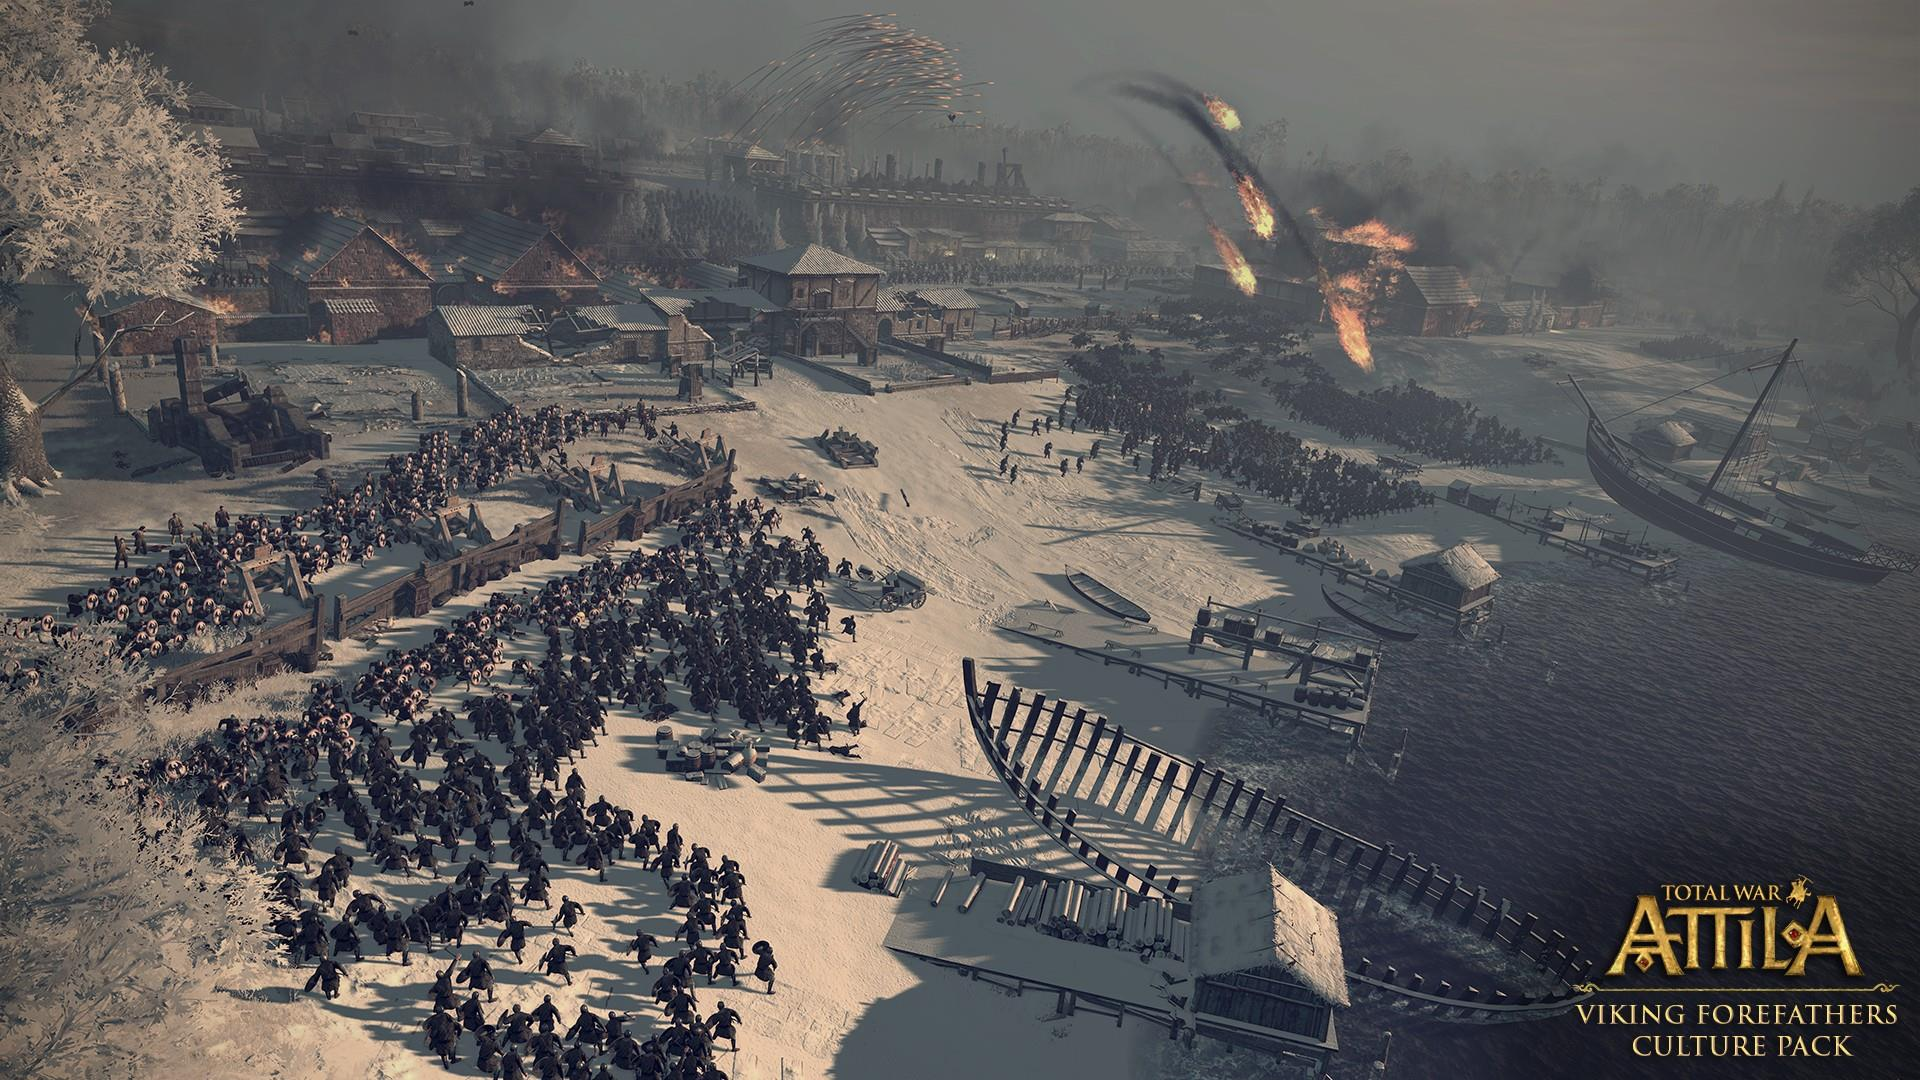 Wallpapers] Total War Attila   Strategy Academy 1920x1080